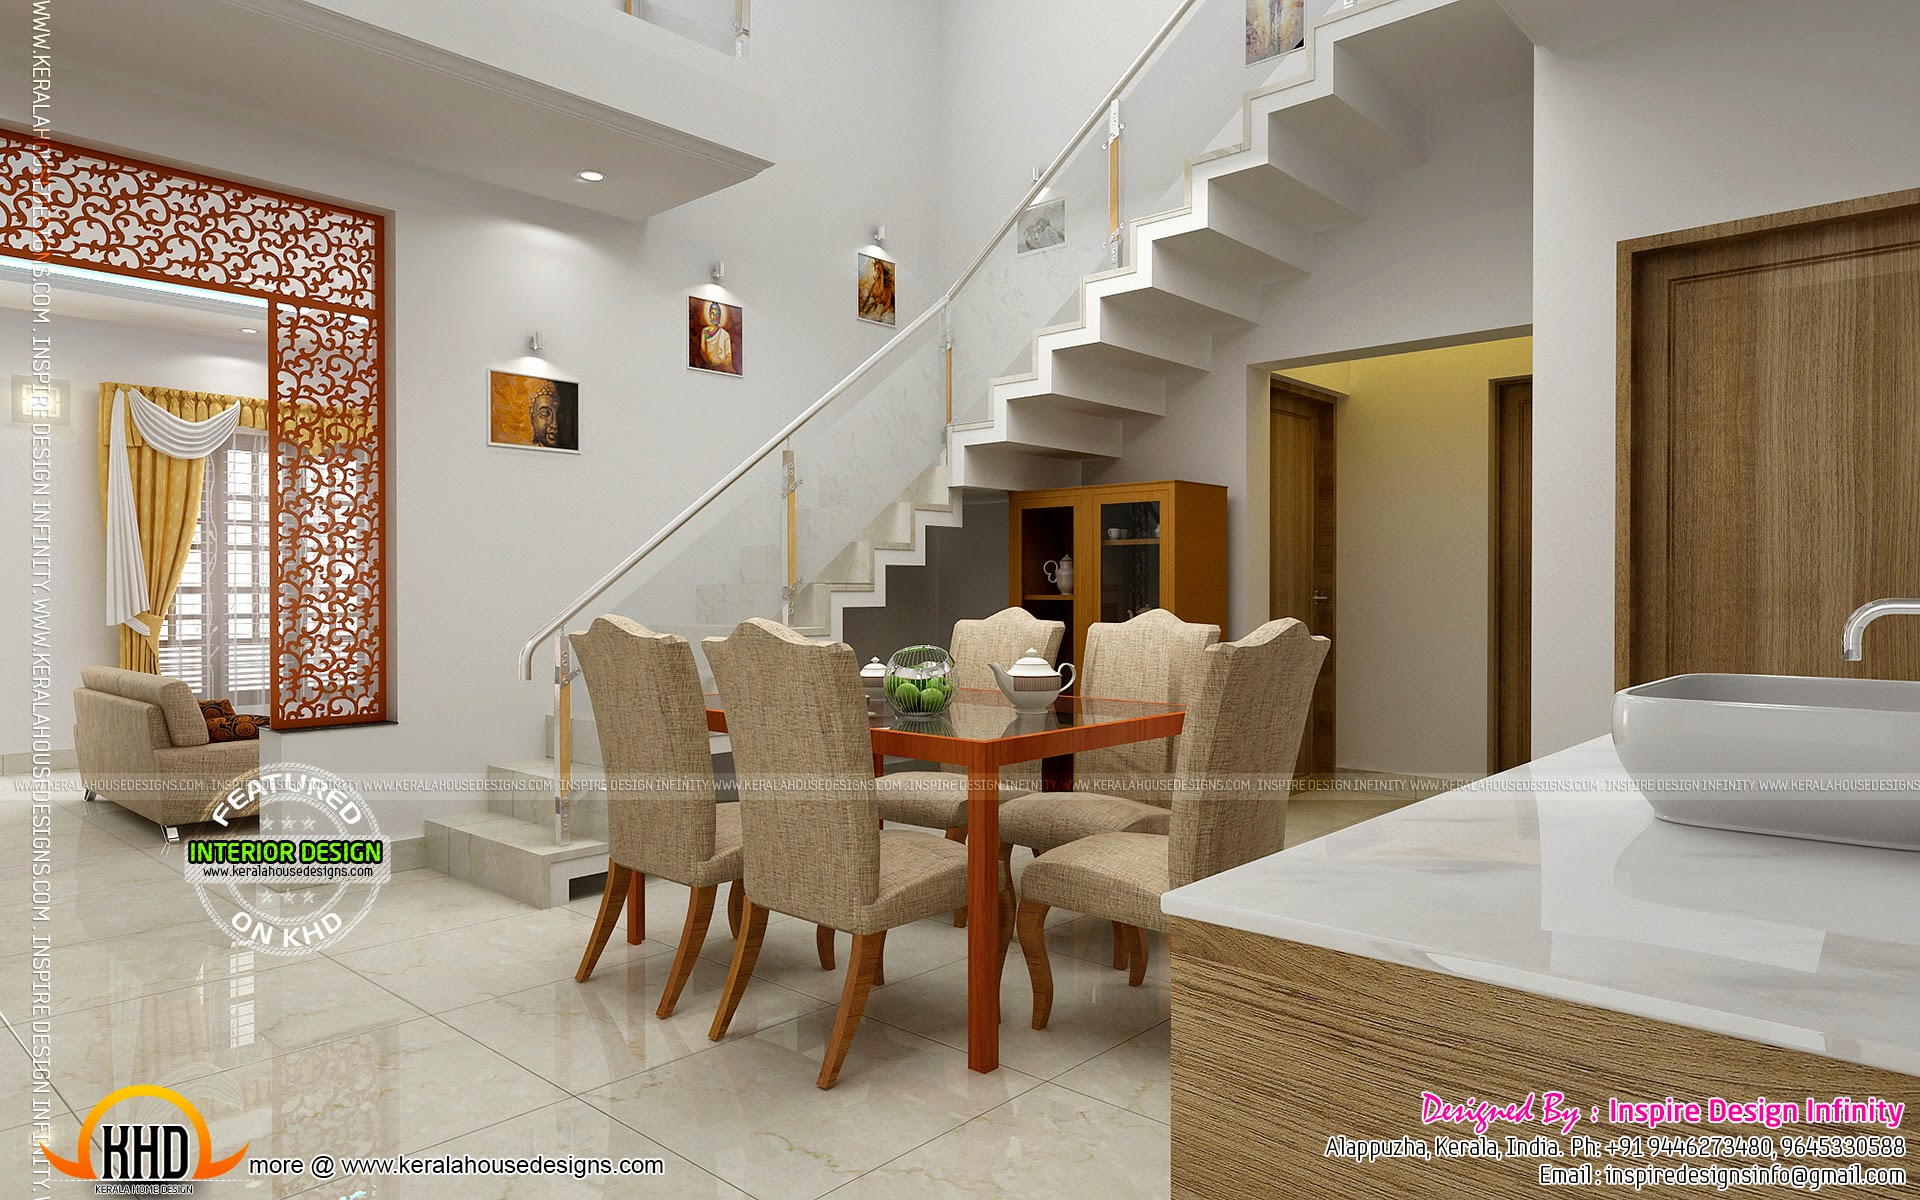 Dining room designs kerala home design and floor plans - Design for dining room ...